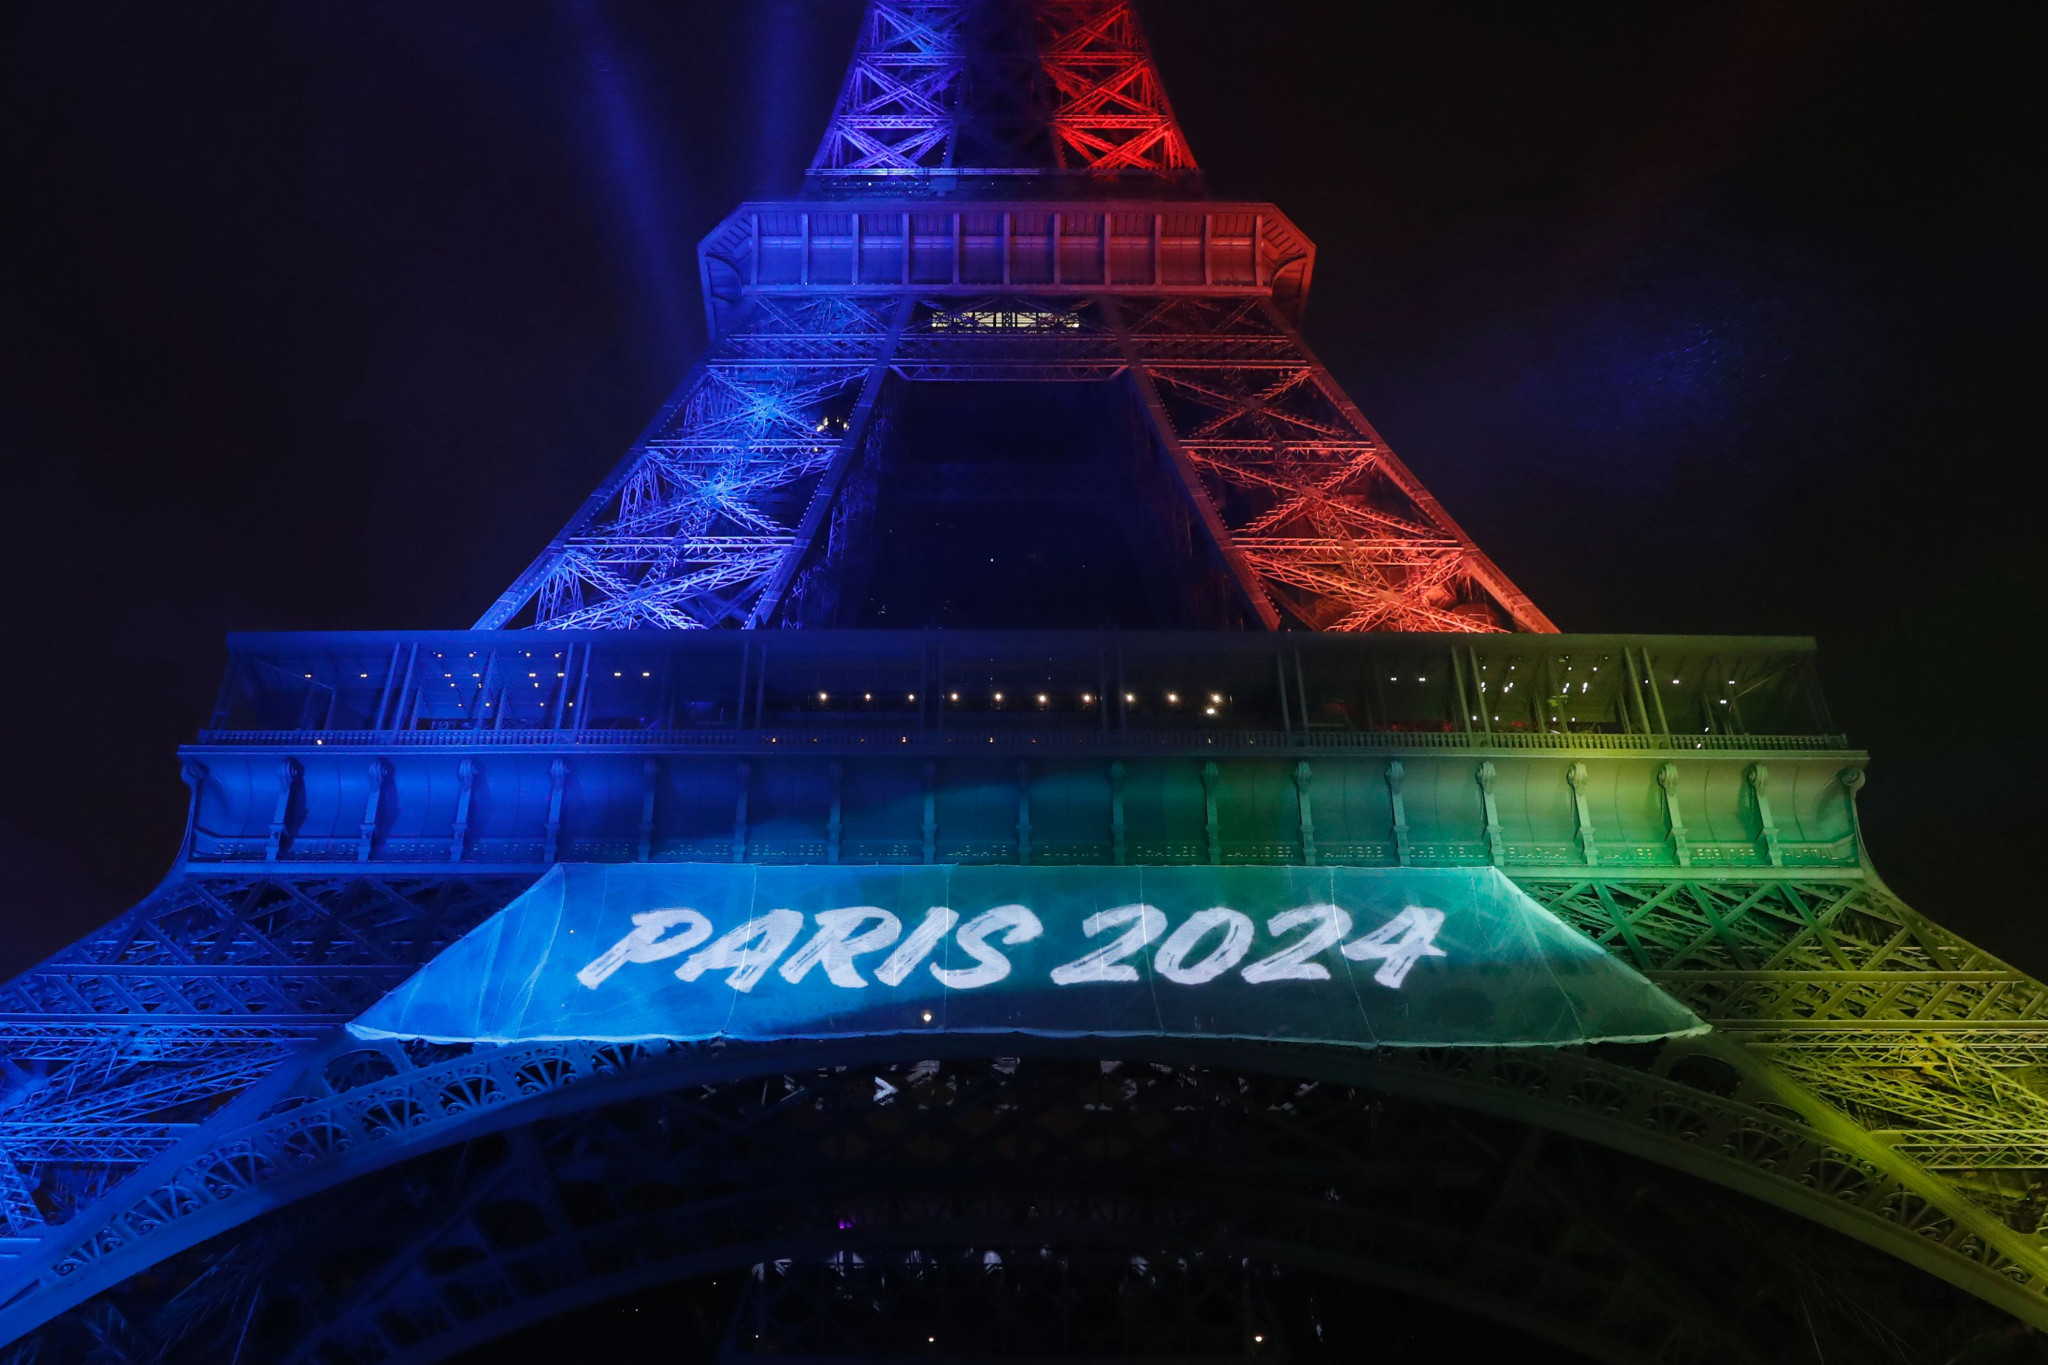 Transport, accommodation and human resources have all been targeted for huge savings by the Paris 2024 organisers in the wake of the COVID-19 pandemic ©Getty Images